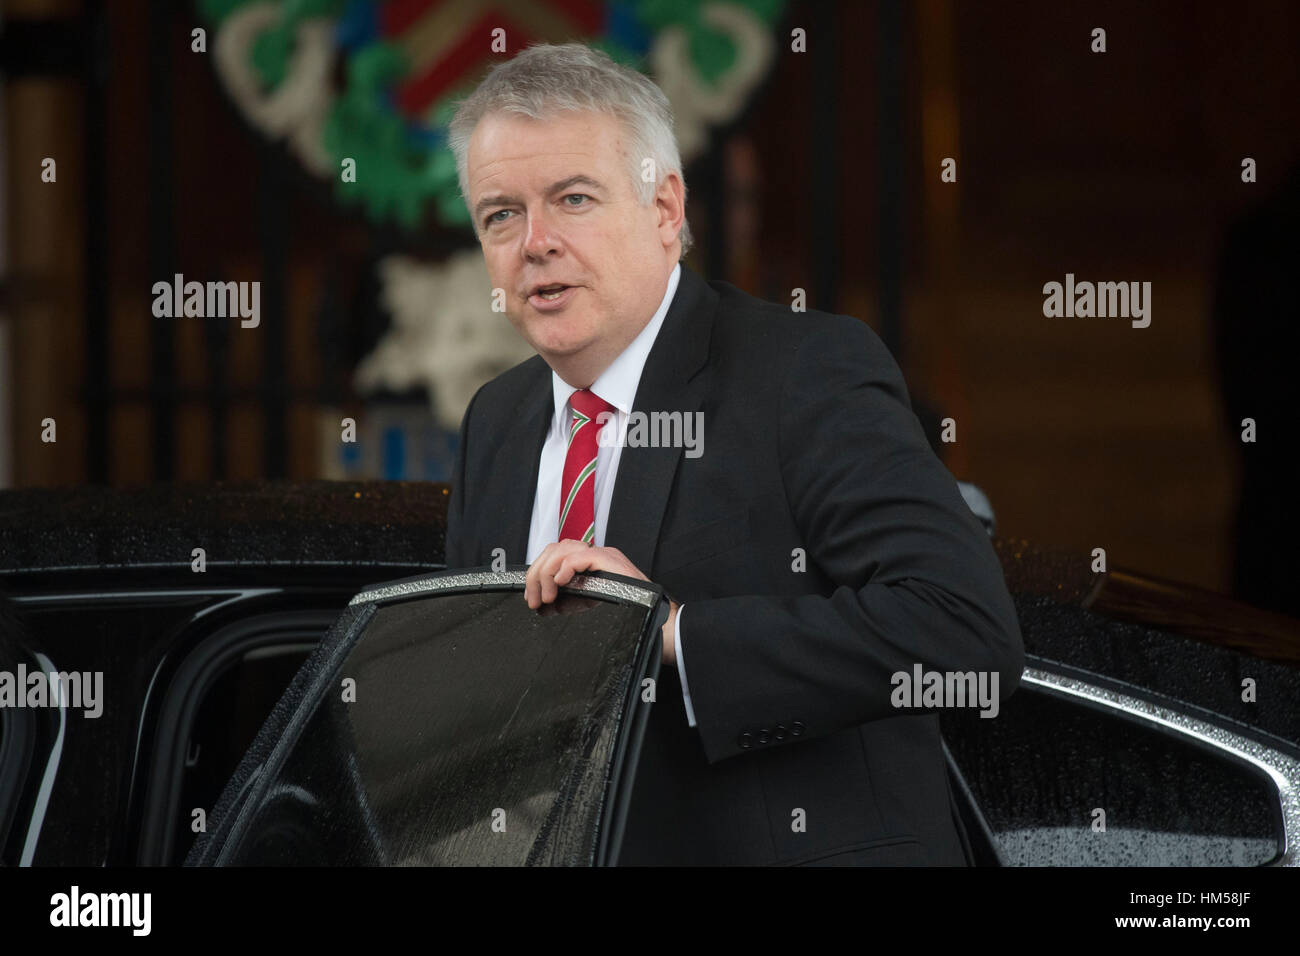 Michelle O'Neill, leader of Sinn Fein, arrives at a Joint Ministerial Committee (JMC) meeting at Cardiff City - Stock Image